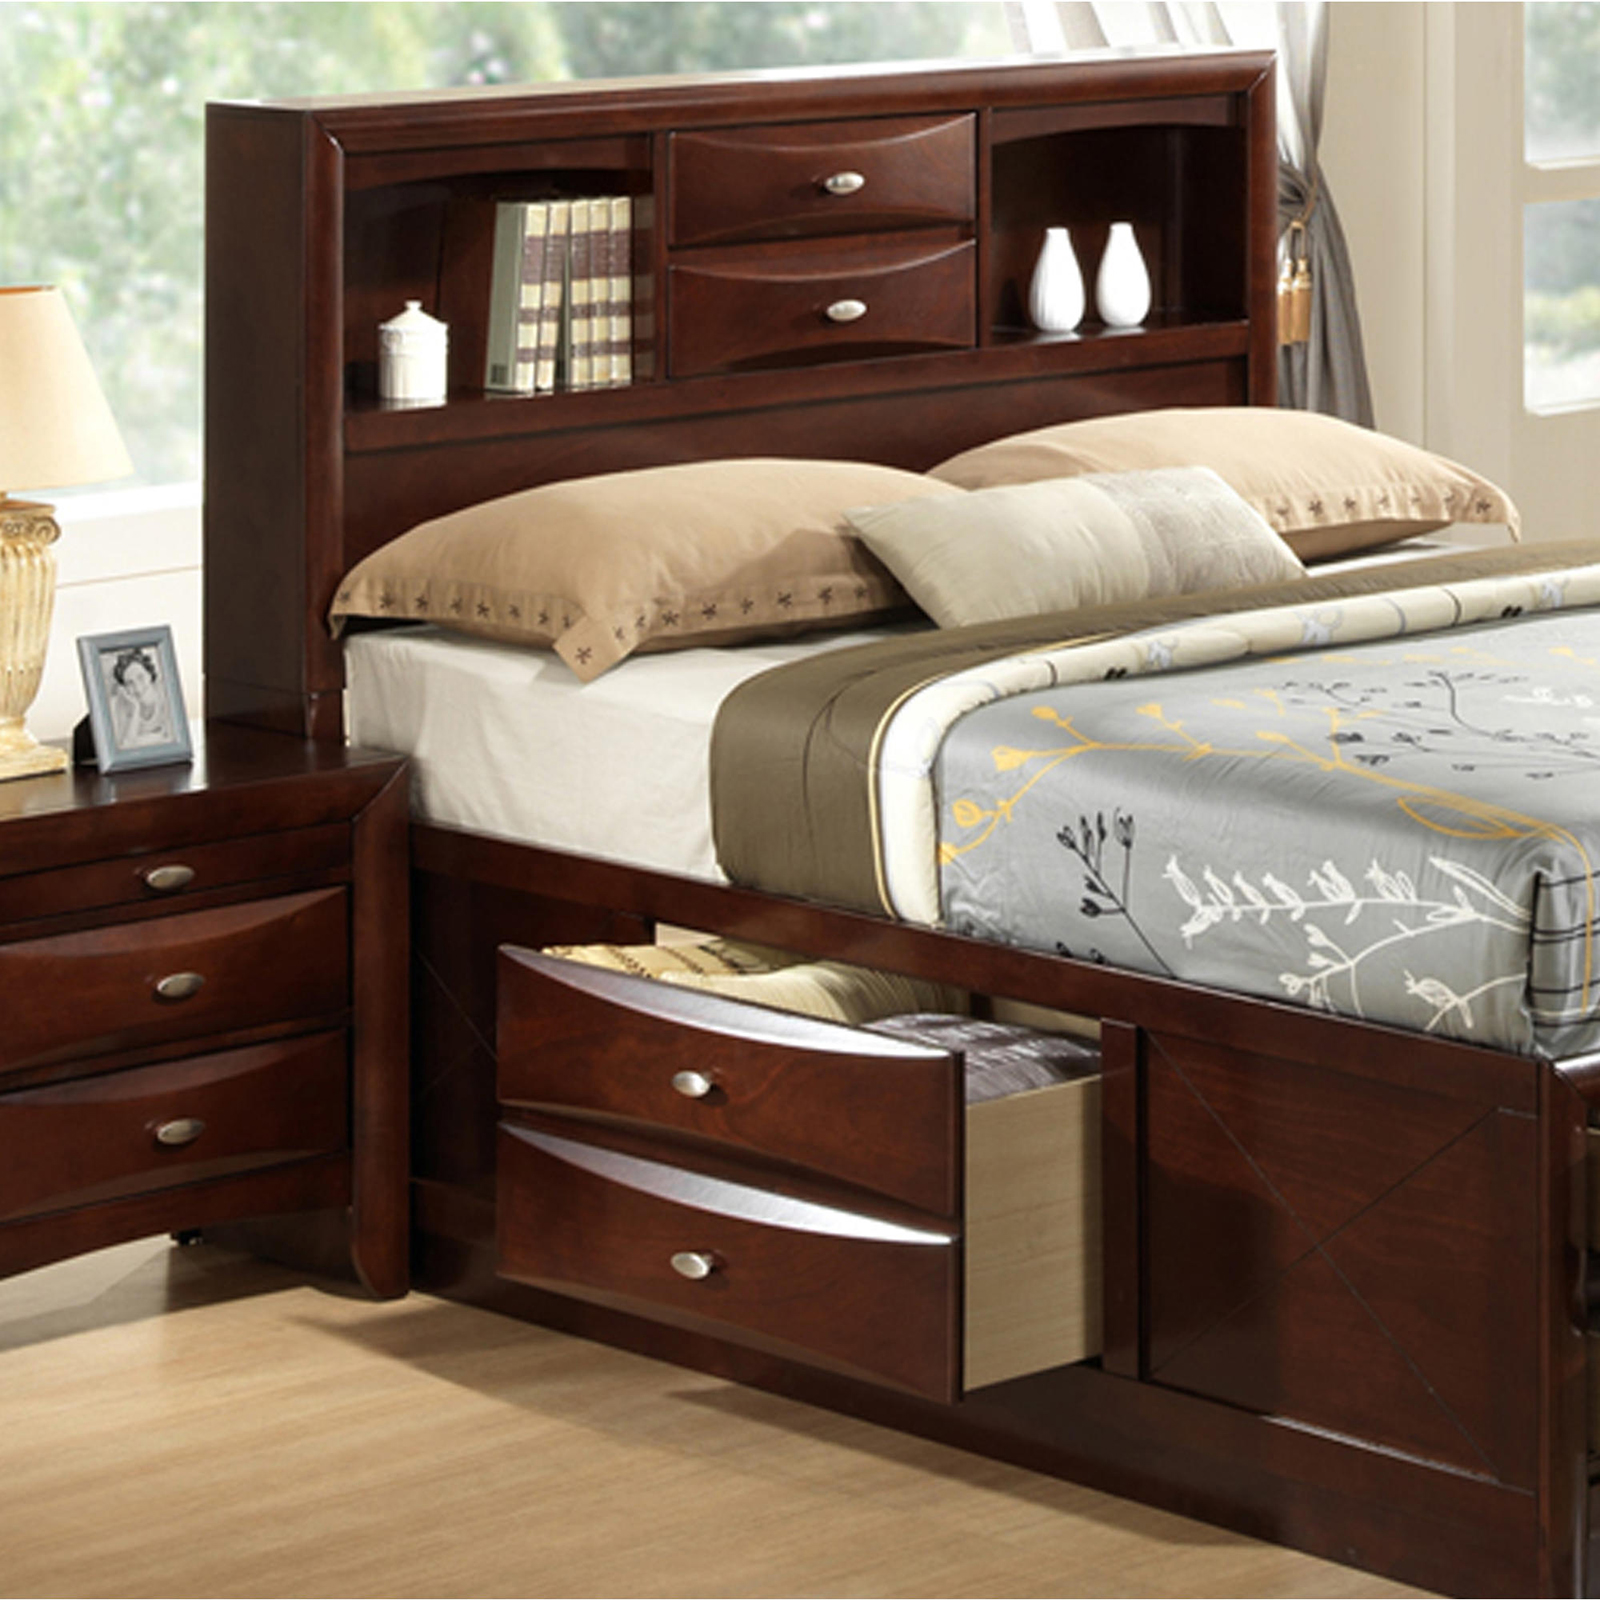 Roundhill Furniture Emily 111 King Storage Bed Sears